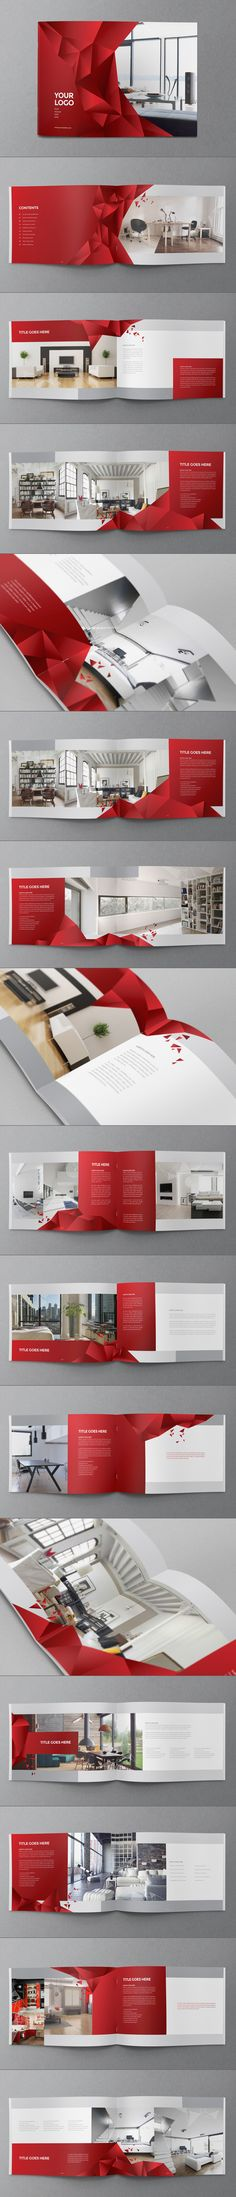 Design de Interiores Brochura sobre Behance